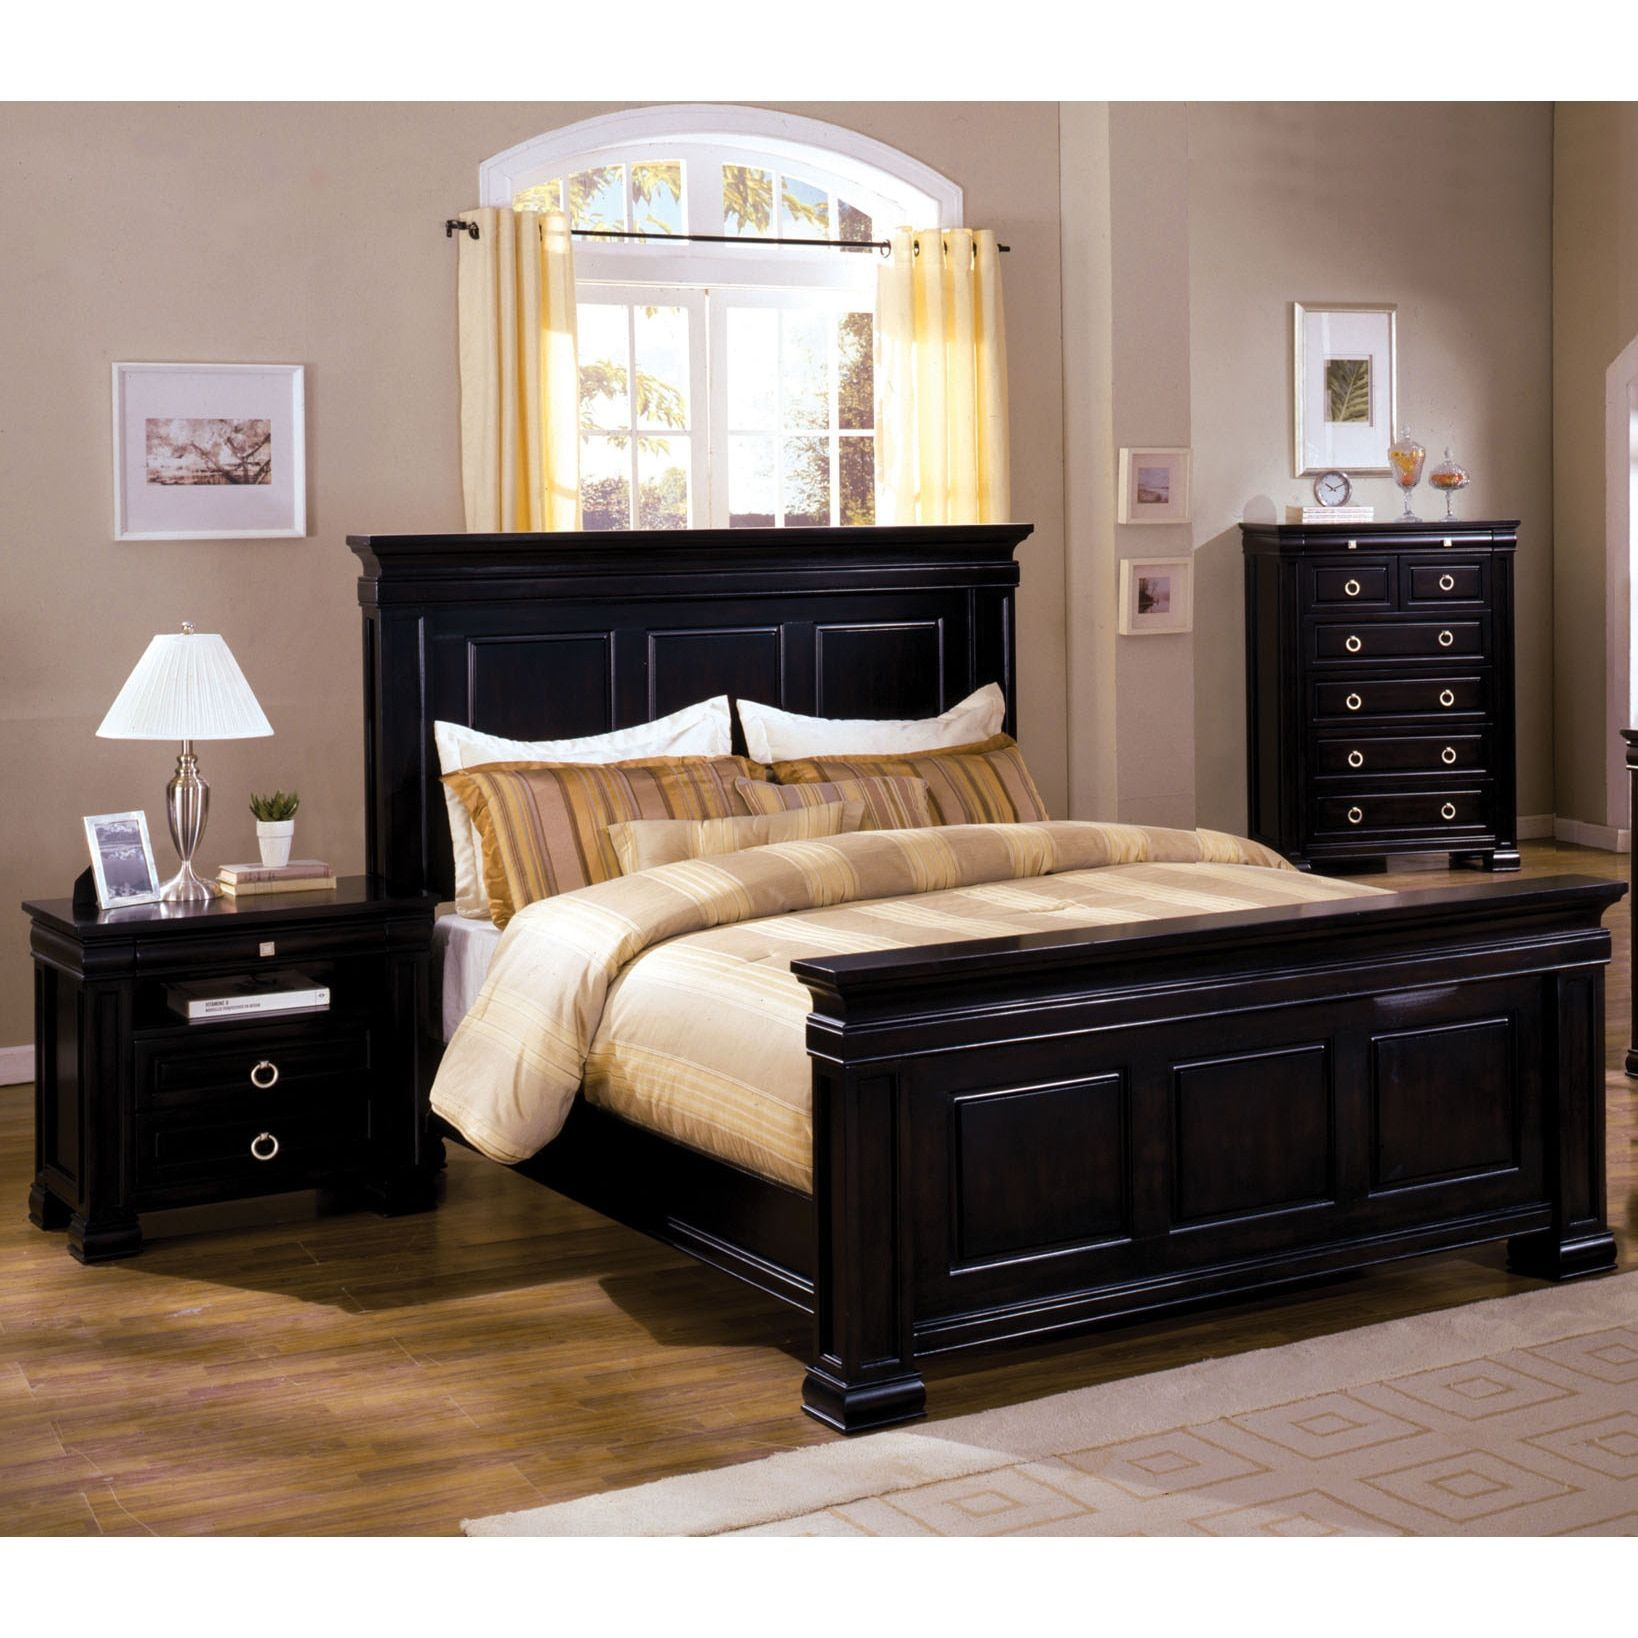 Furniture Of America Claresse Traditional 2 Piece Espresso Panel Bedroom Set Cal King Black Size California